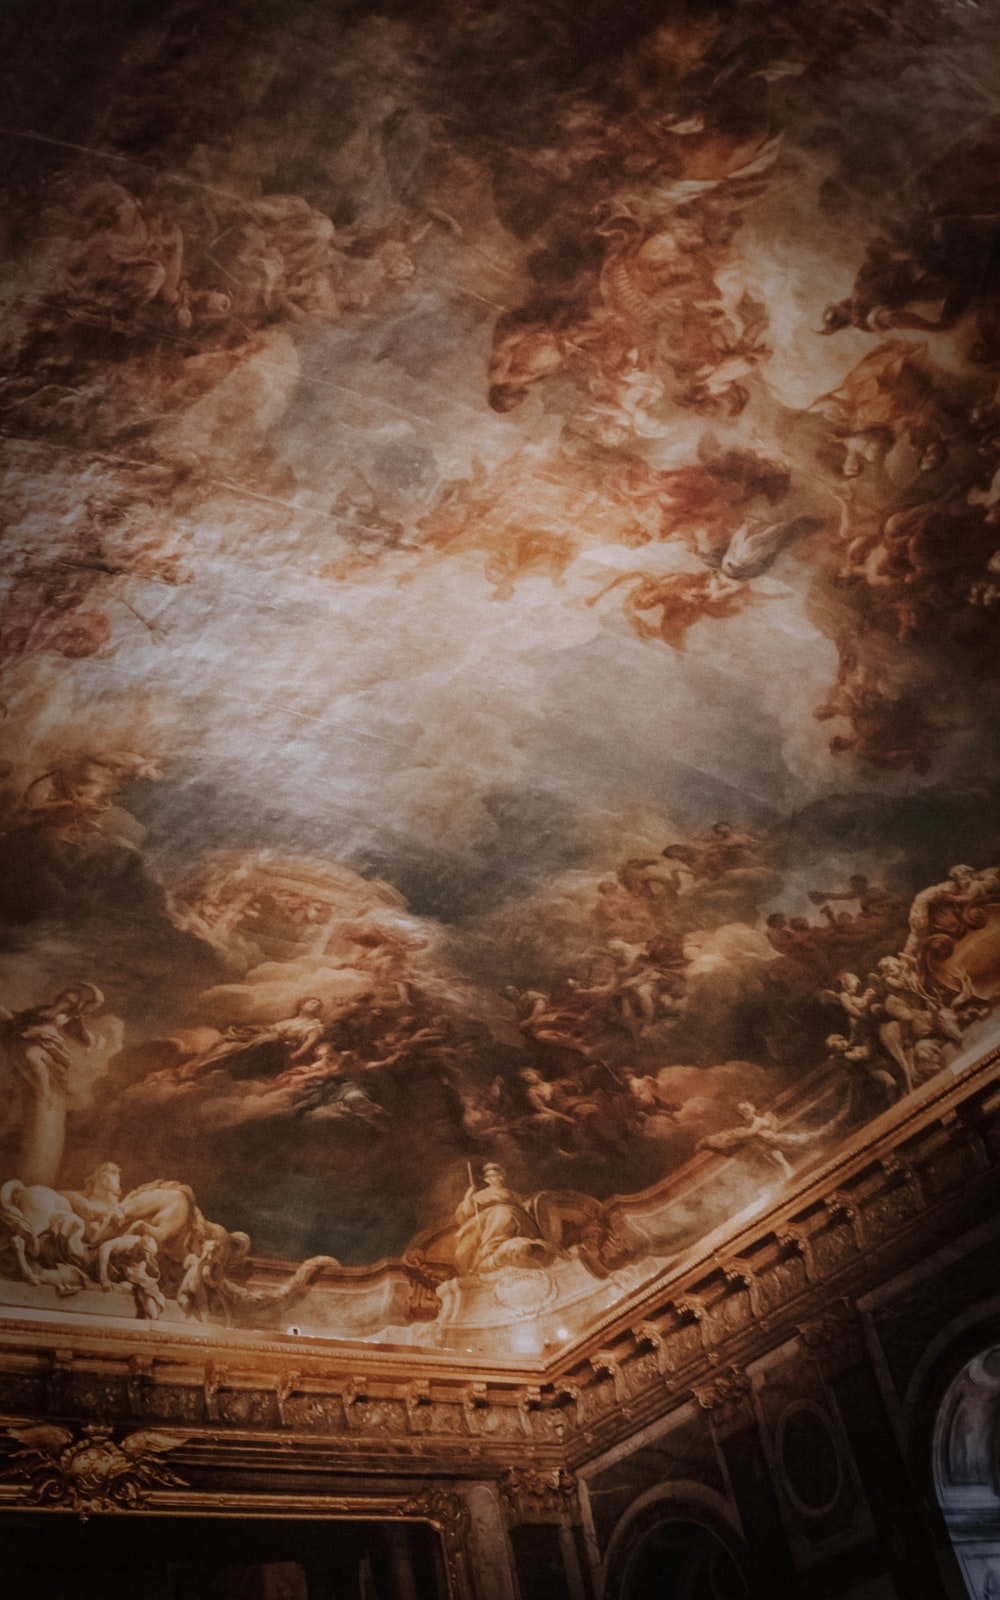 Palace Of Versailles Versailles France Pictures Download Free Images On Unsplash